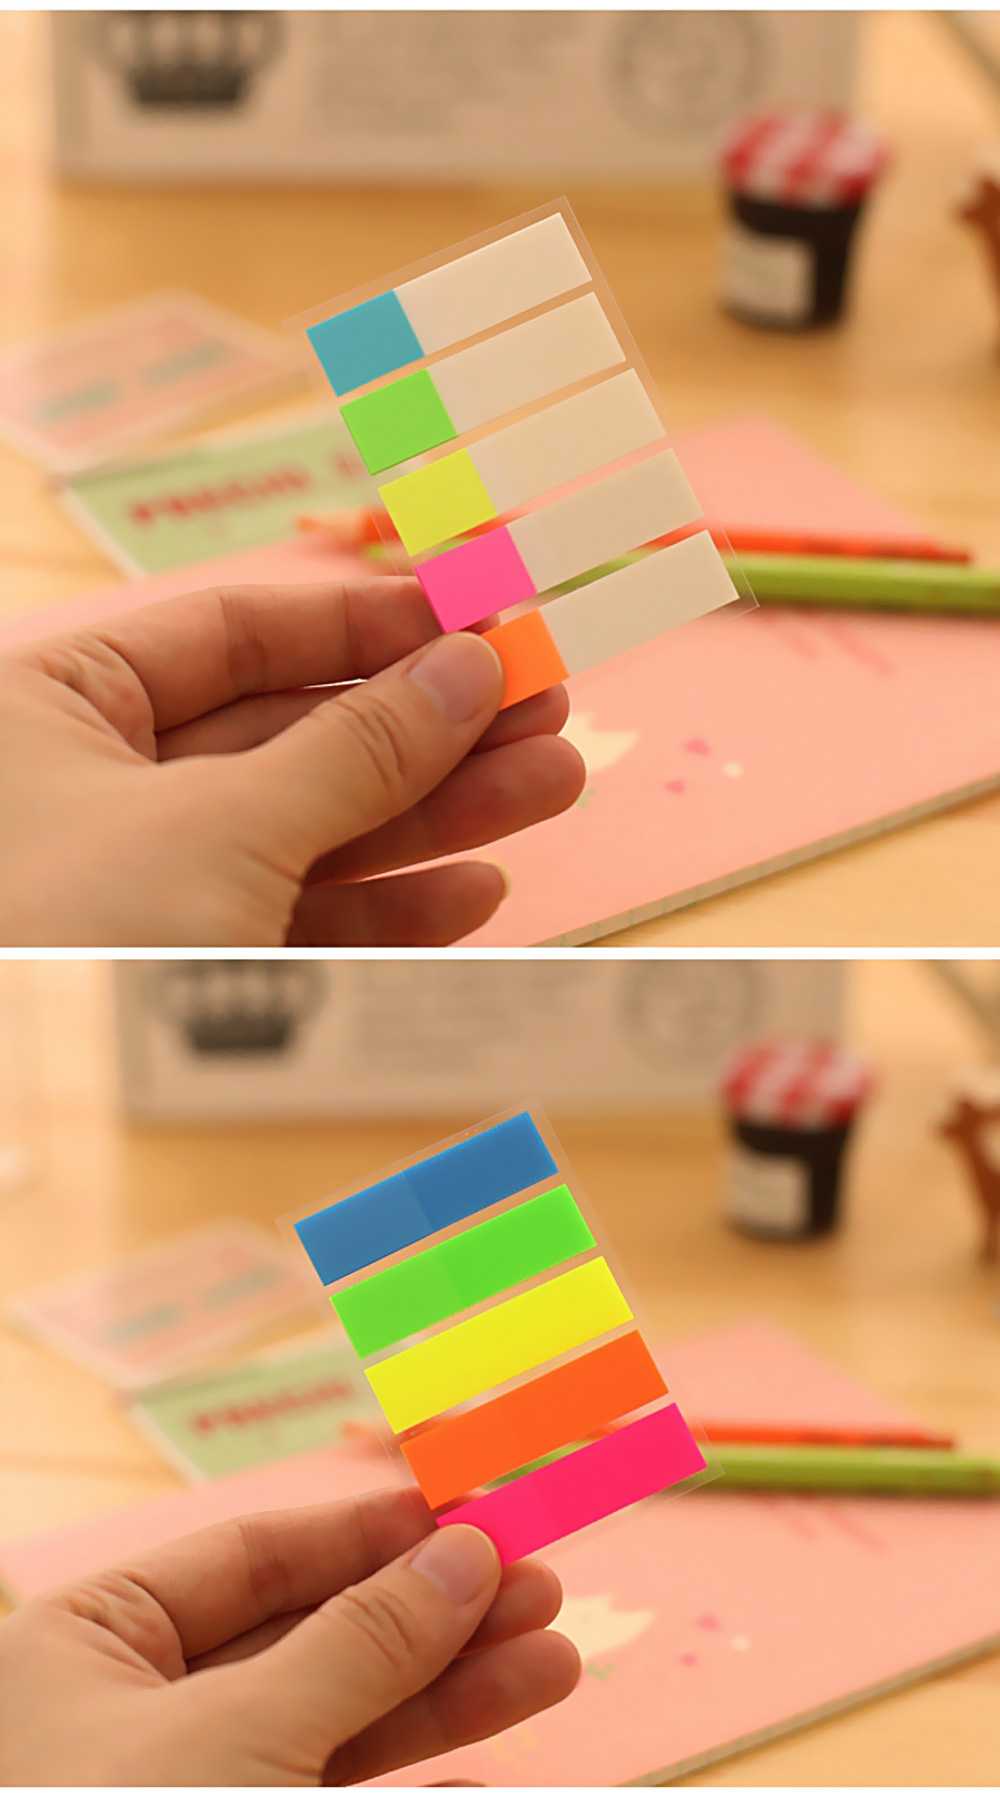 Fluorescent Index Sticker Bookmark Memo Pad Tab Sticky Notes Office School Supplies Stationery